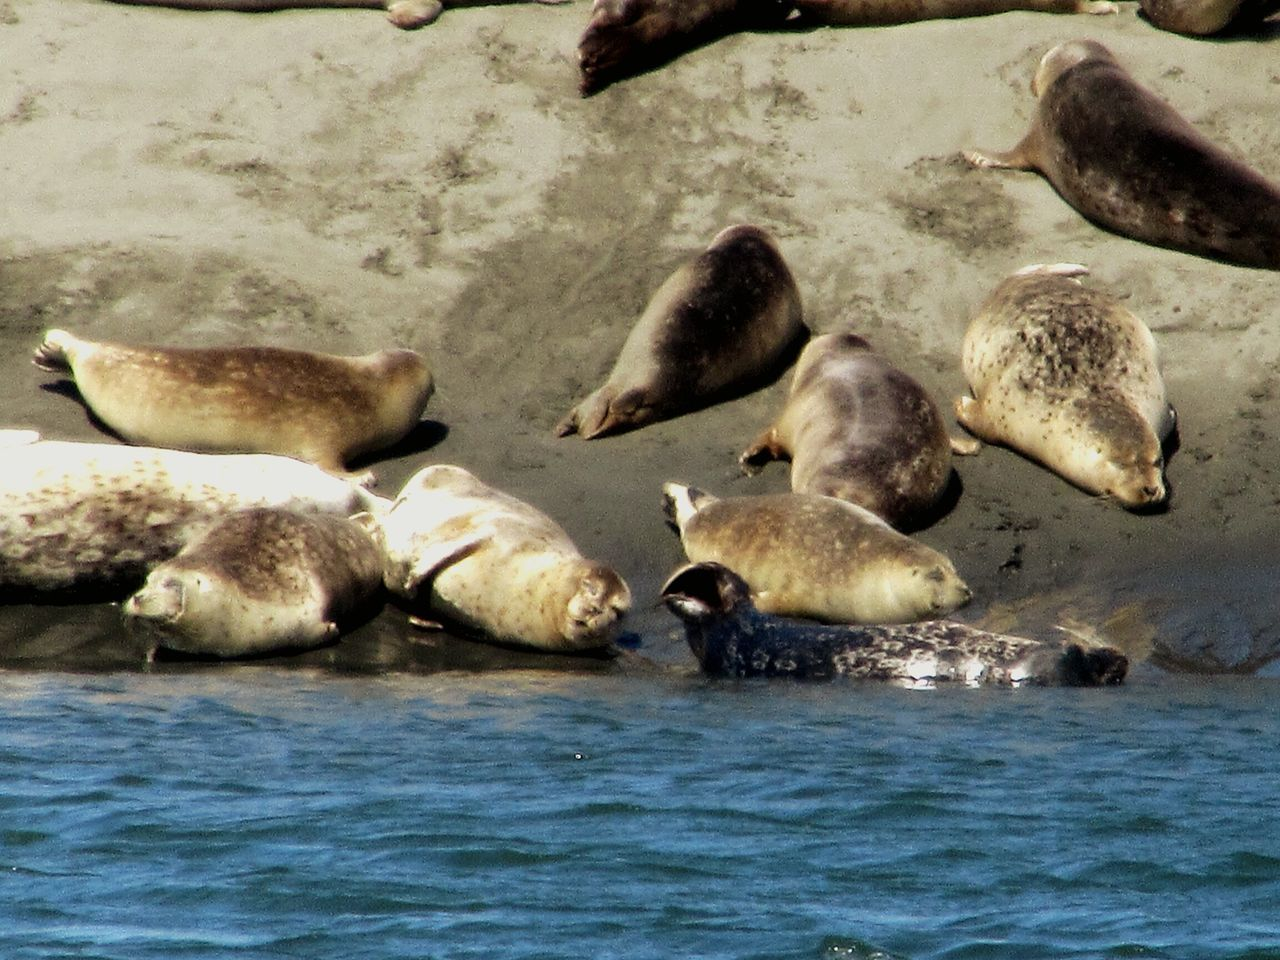 Sealion  Sealife Nature Beachphotography Soaking Up The Sun Ocean View Wildlife Oceanlife Family Time